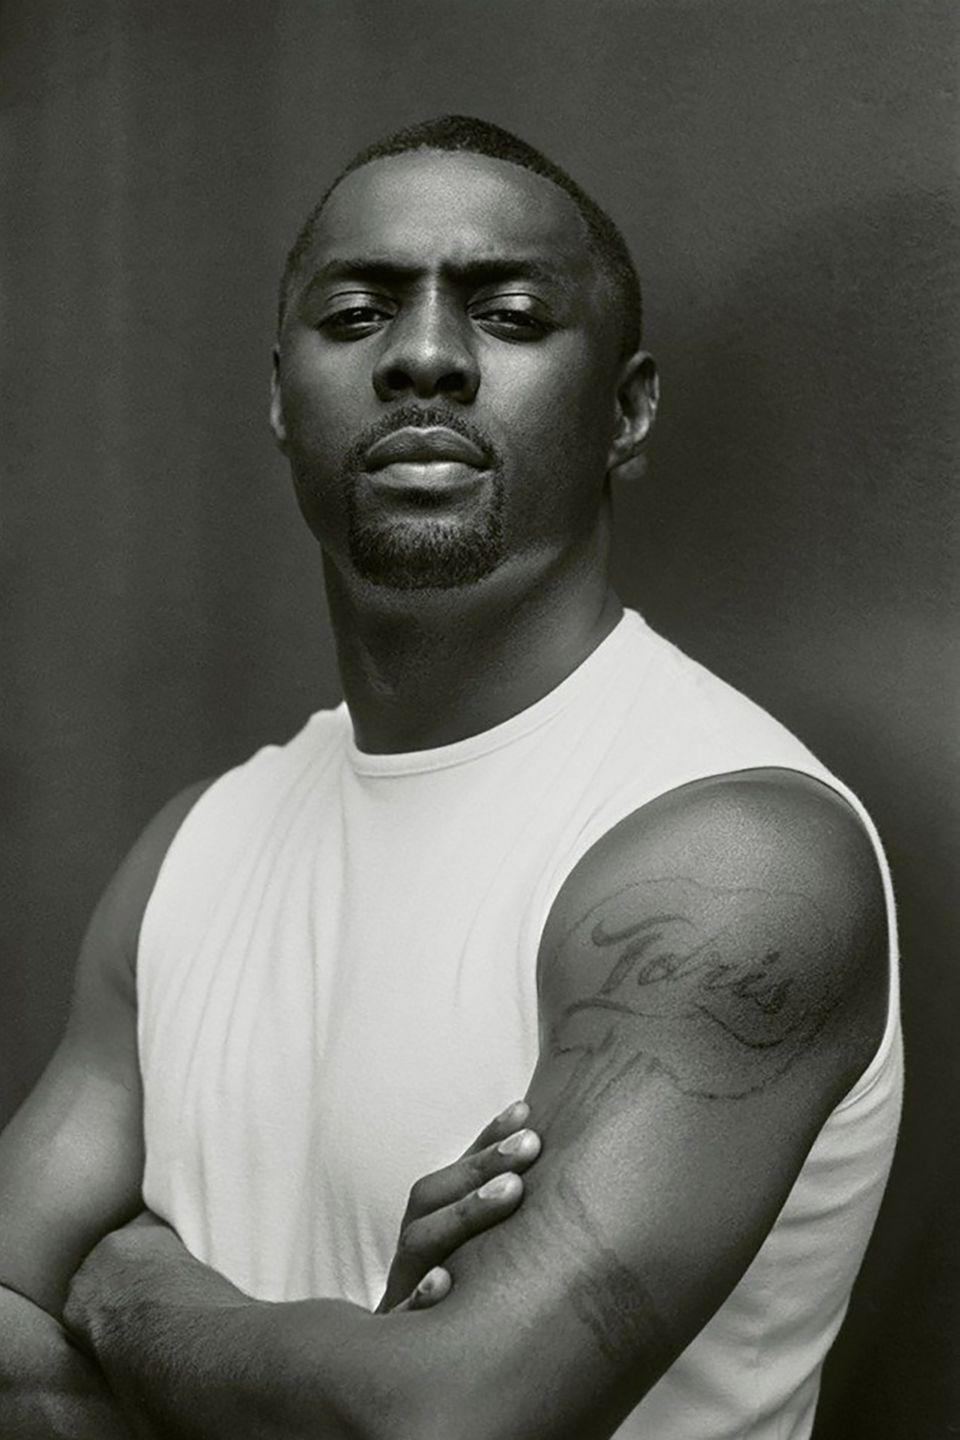 <p>After earning a spot in the National Youth Music Theatre, due to a grant from the Prince's Trust, Idris Elba worked in various odd jobs in his home city of London while auditioning. The actor's first TV role was for the soap opera <em>Family Affairs</em> in 1997. He later became more prominent thanks to his part on HBO's <em>The Wire</em>.</p>